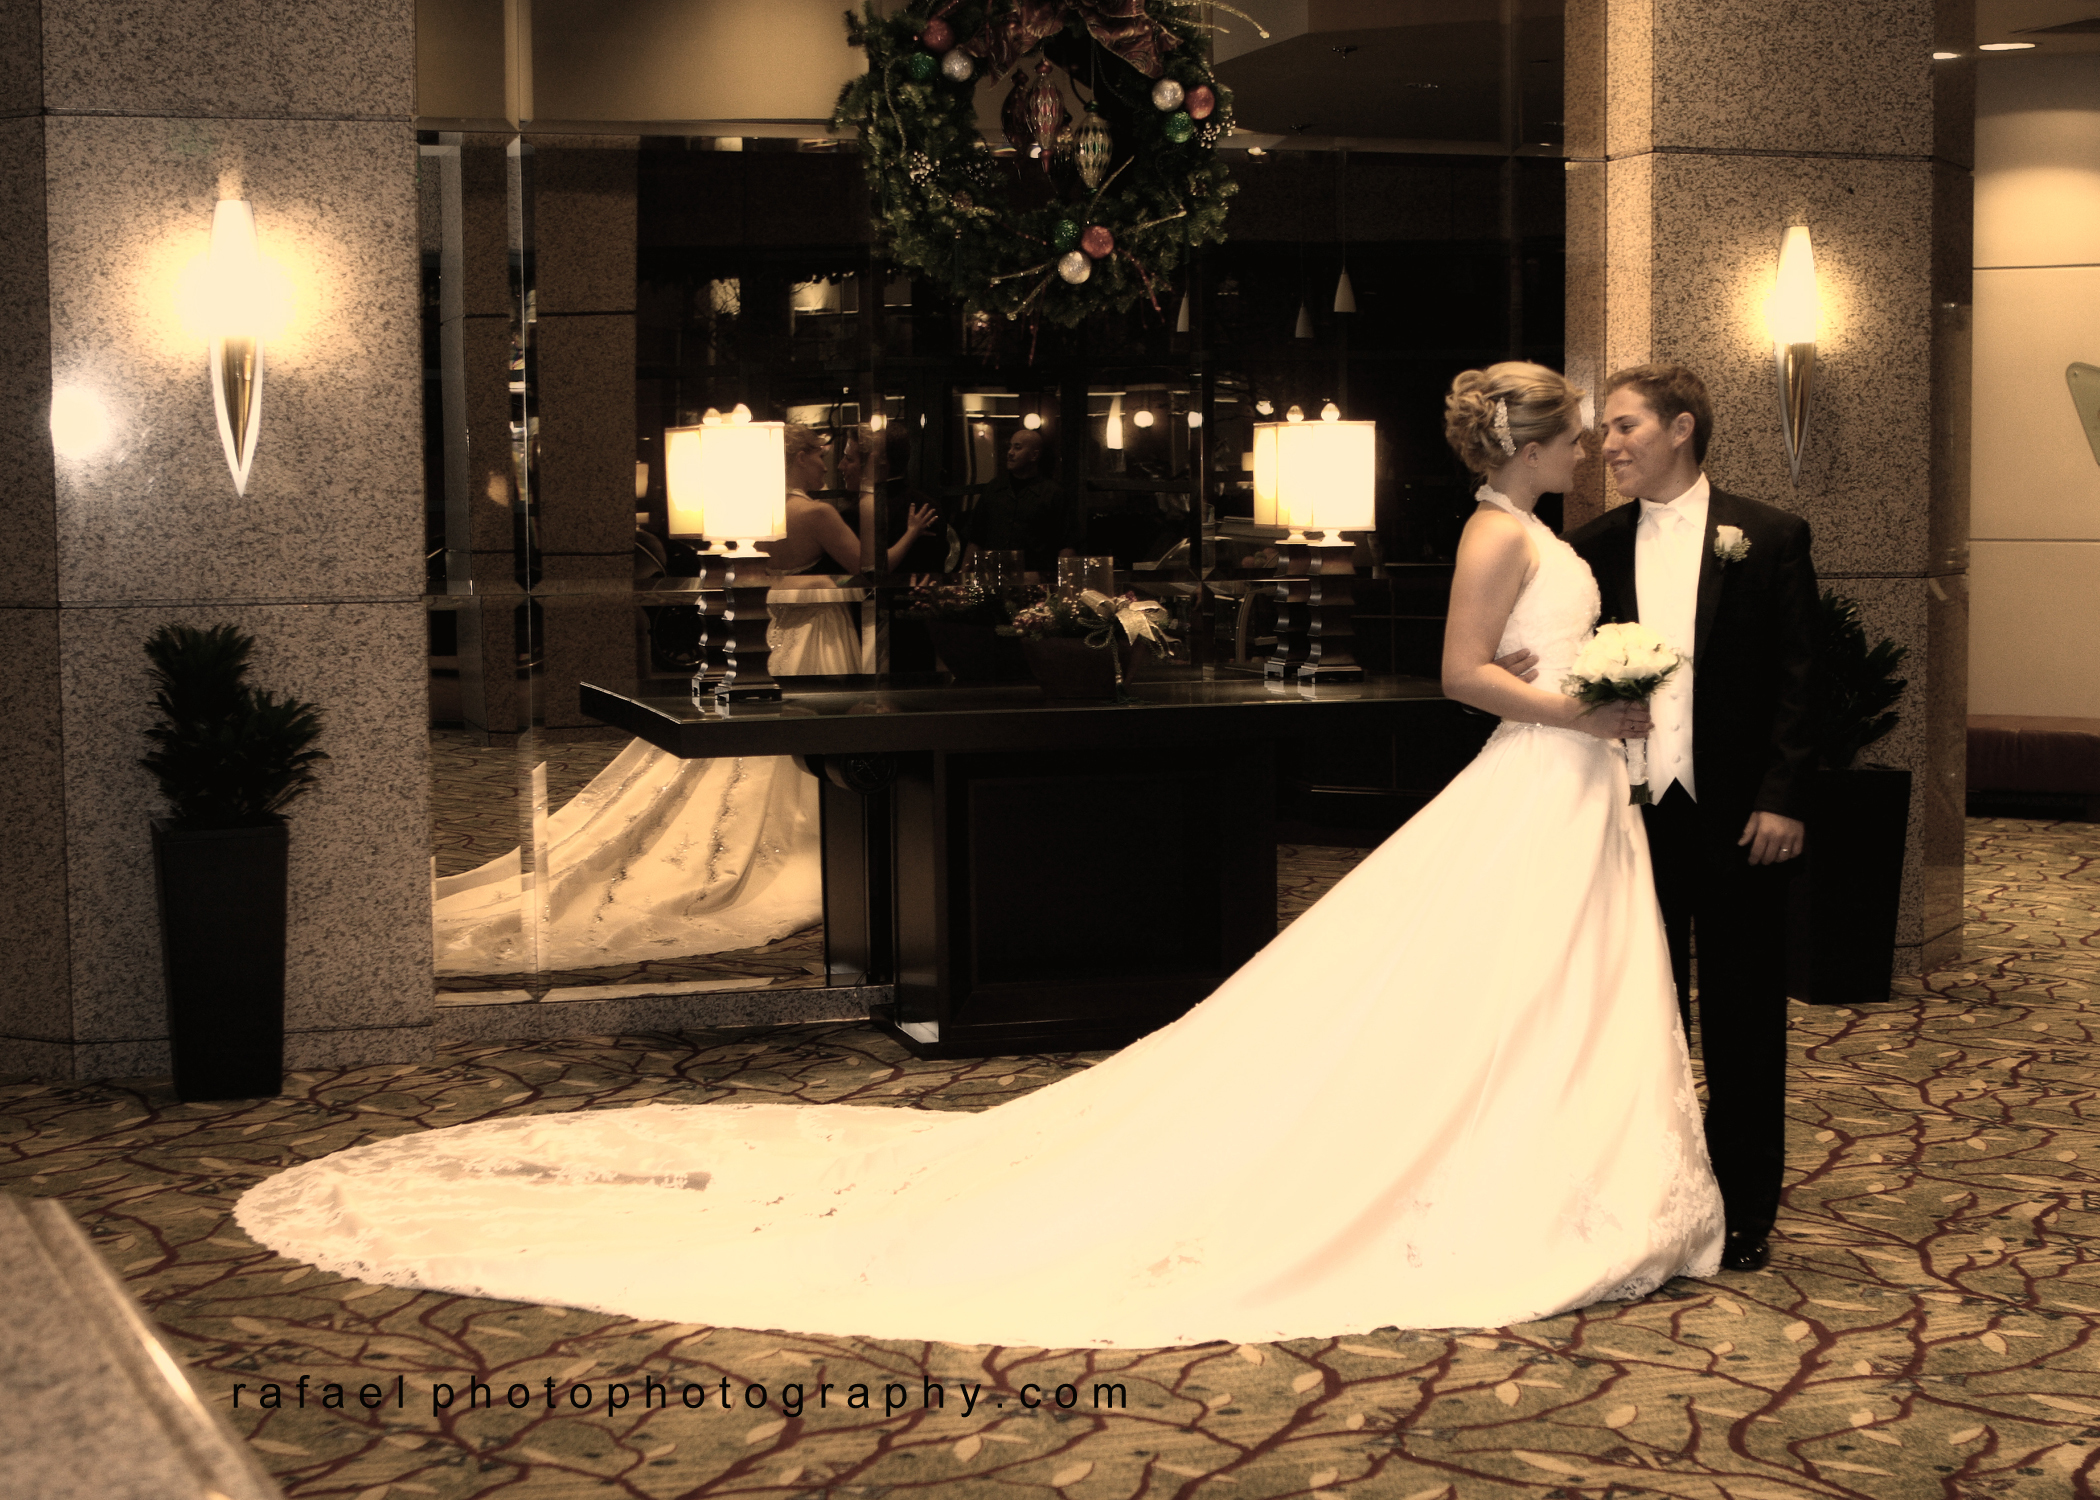 Wedding Dresses, Fashion, white, dress, Bride, Groom, Train, Kiss, Picture